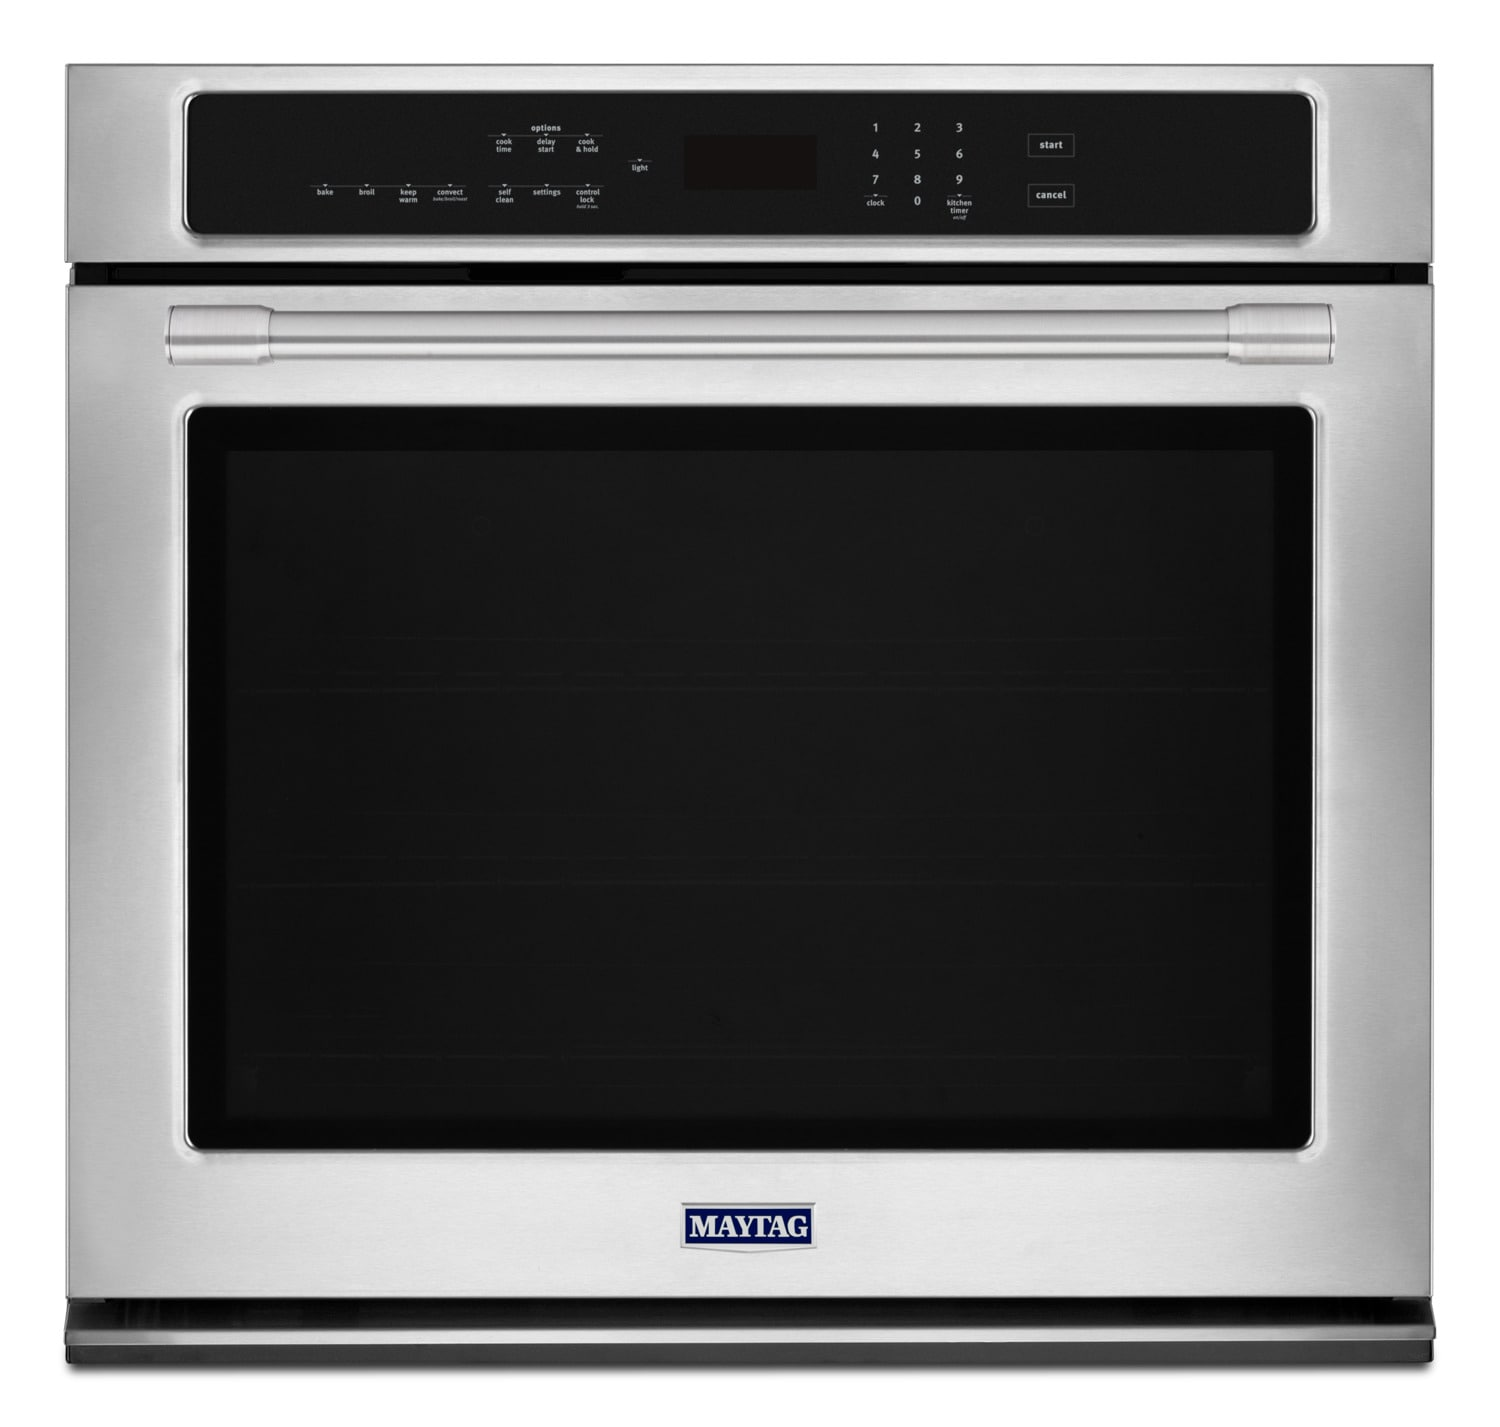 Maytag Stainless Steel Electric Convection Wall Oven (4.3 Cu. Ft.) - MEW9527FZ